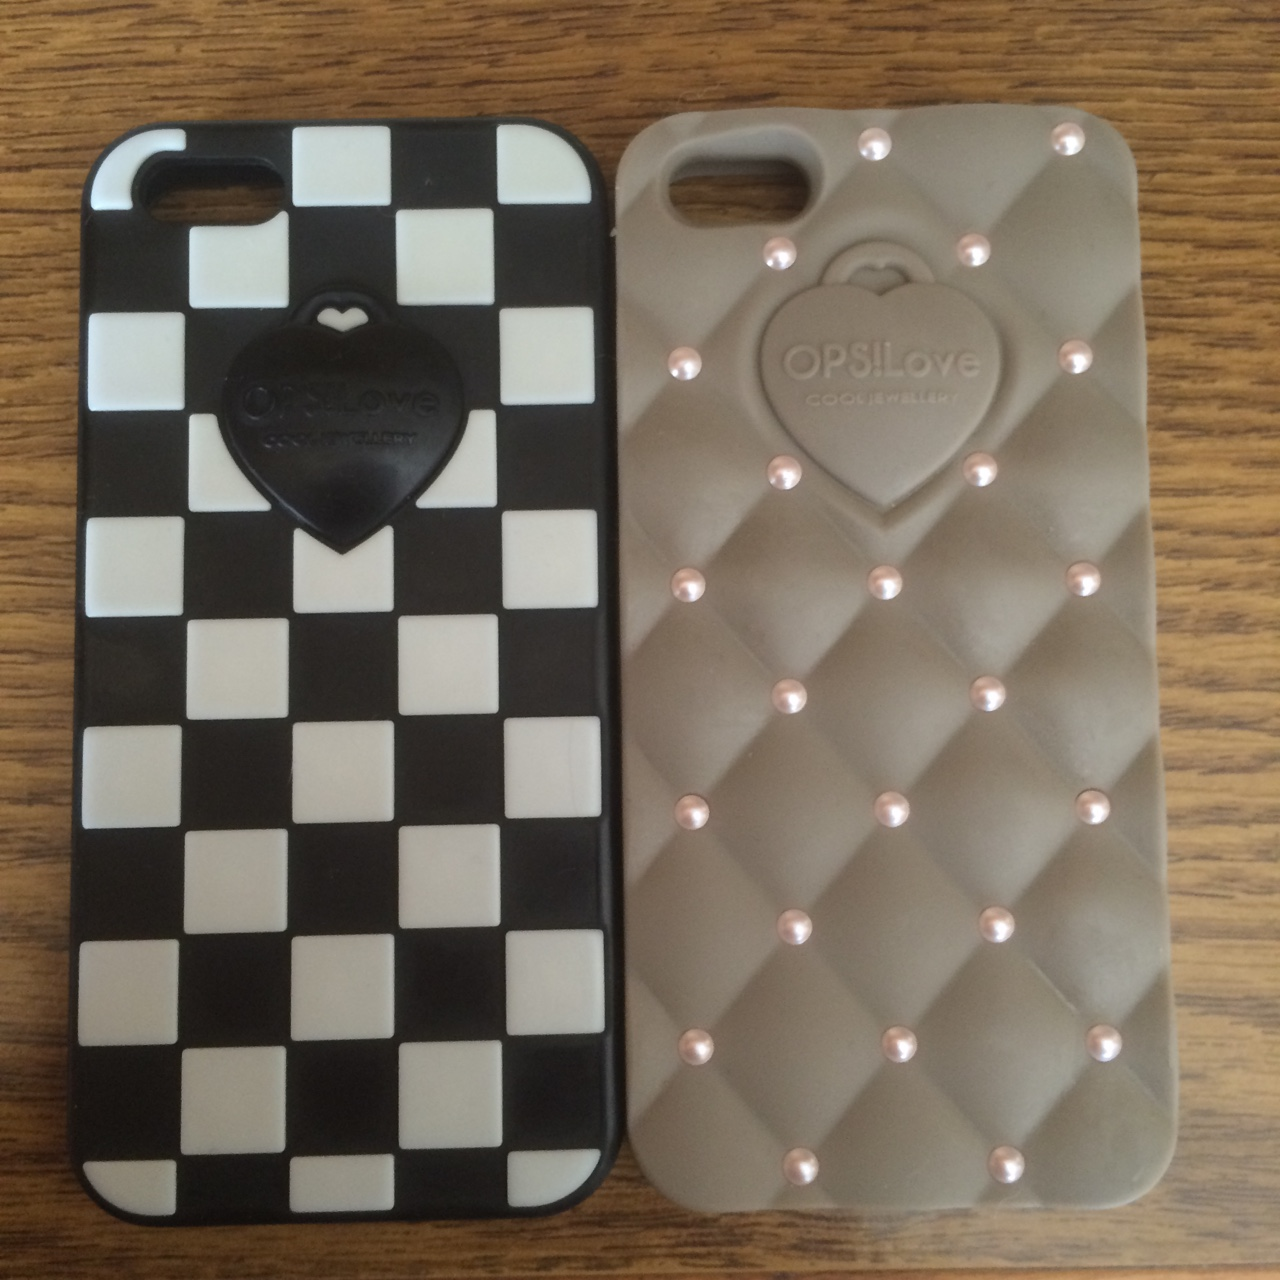 cambiare cover iphone 5